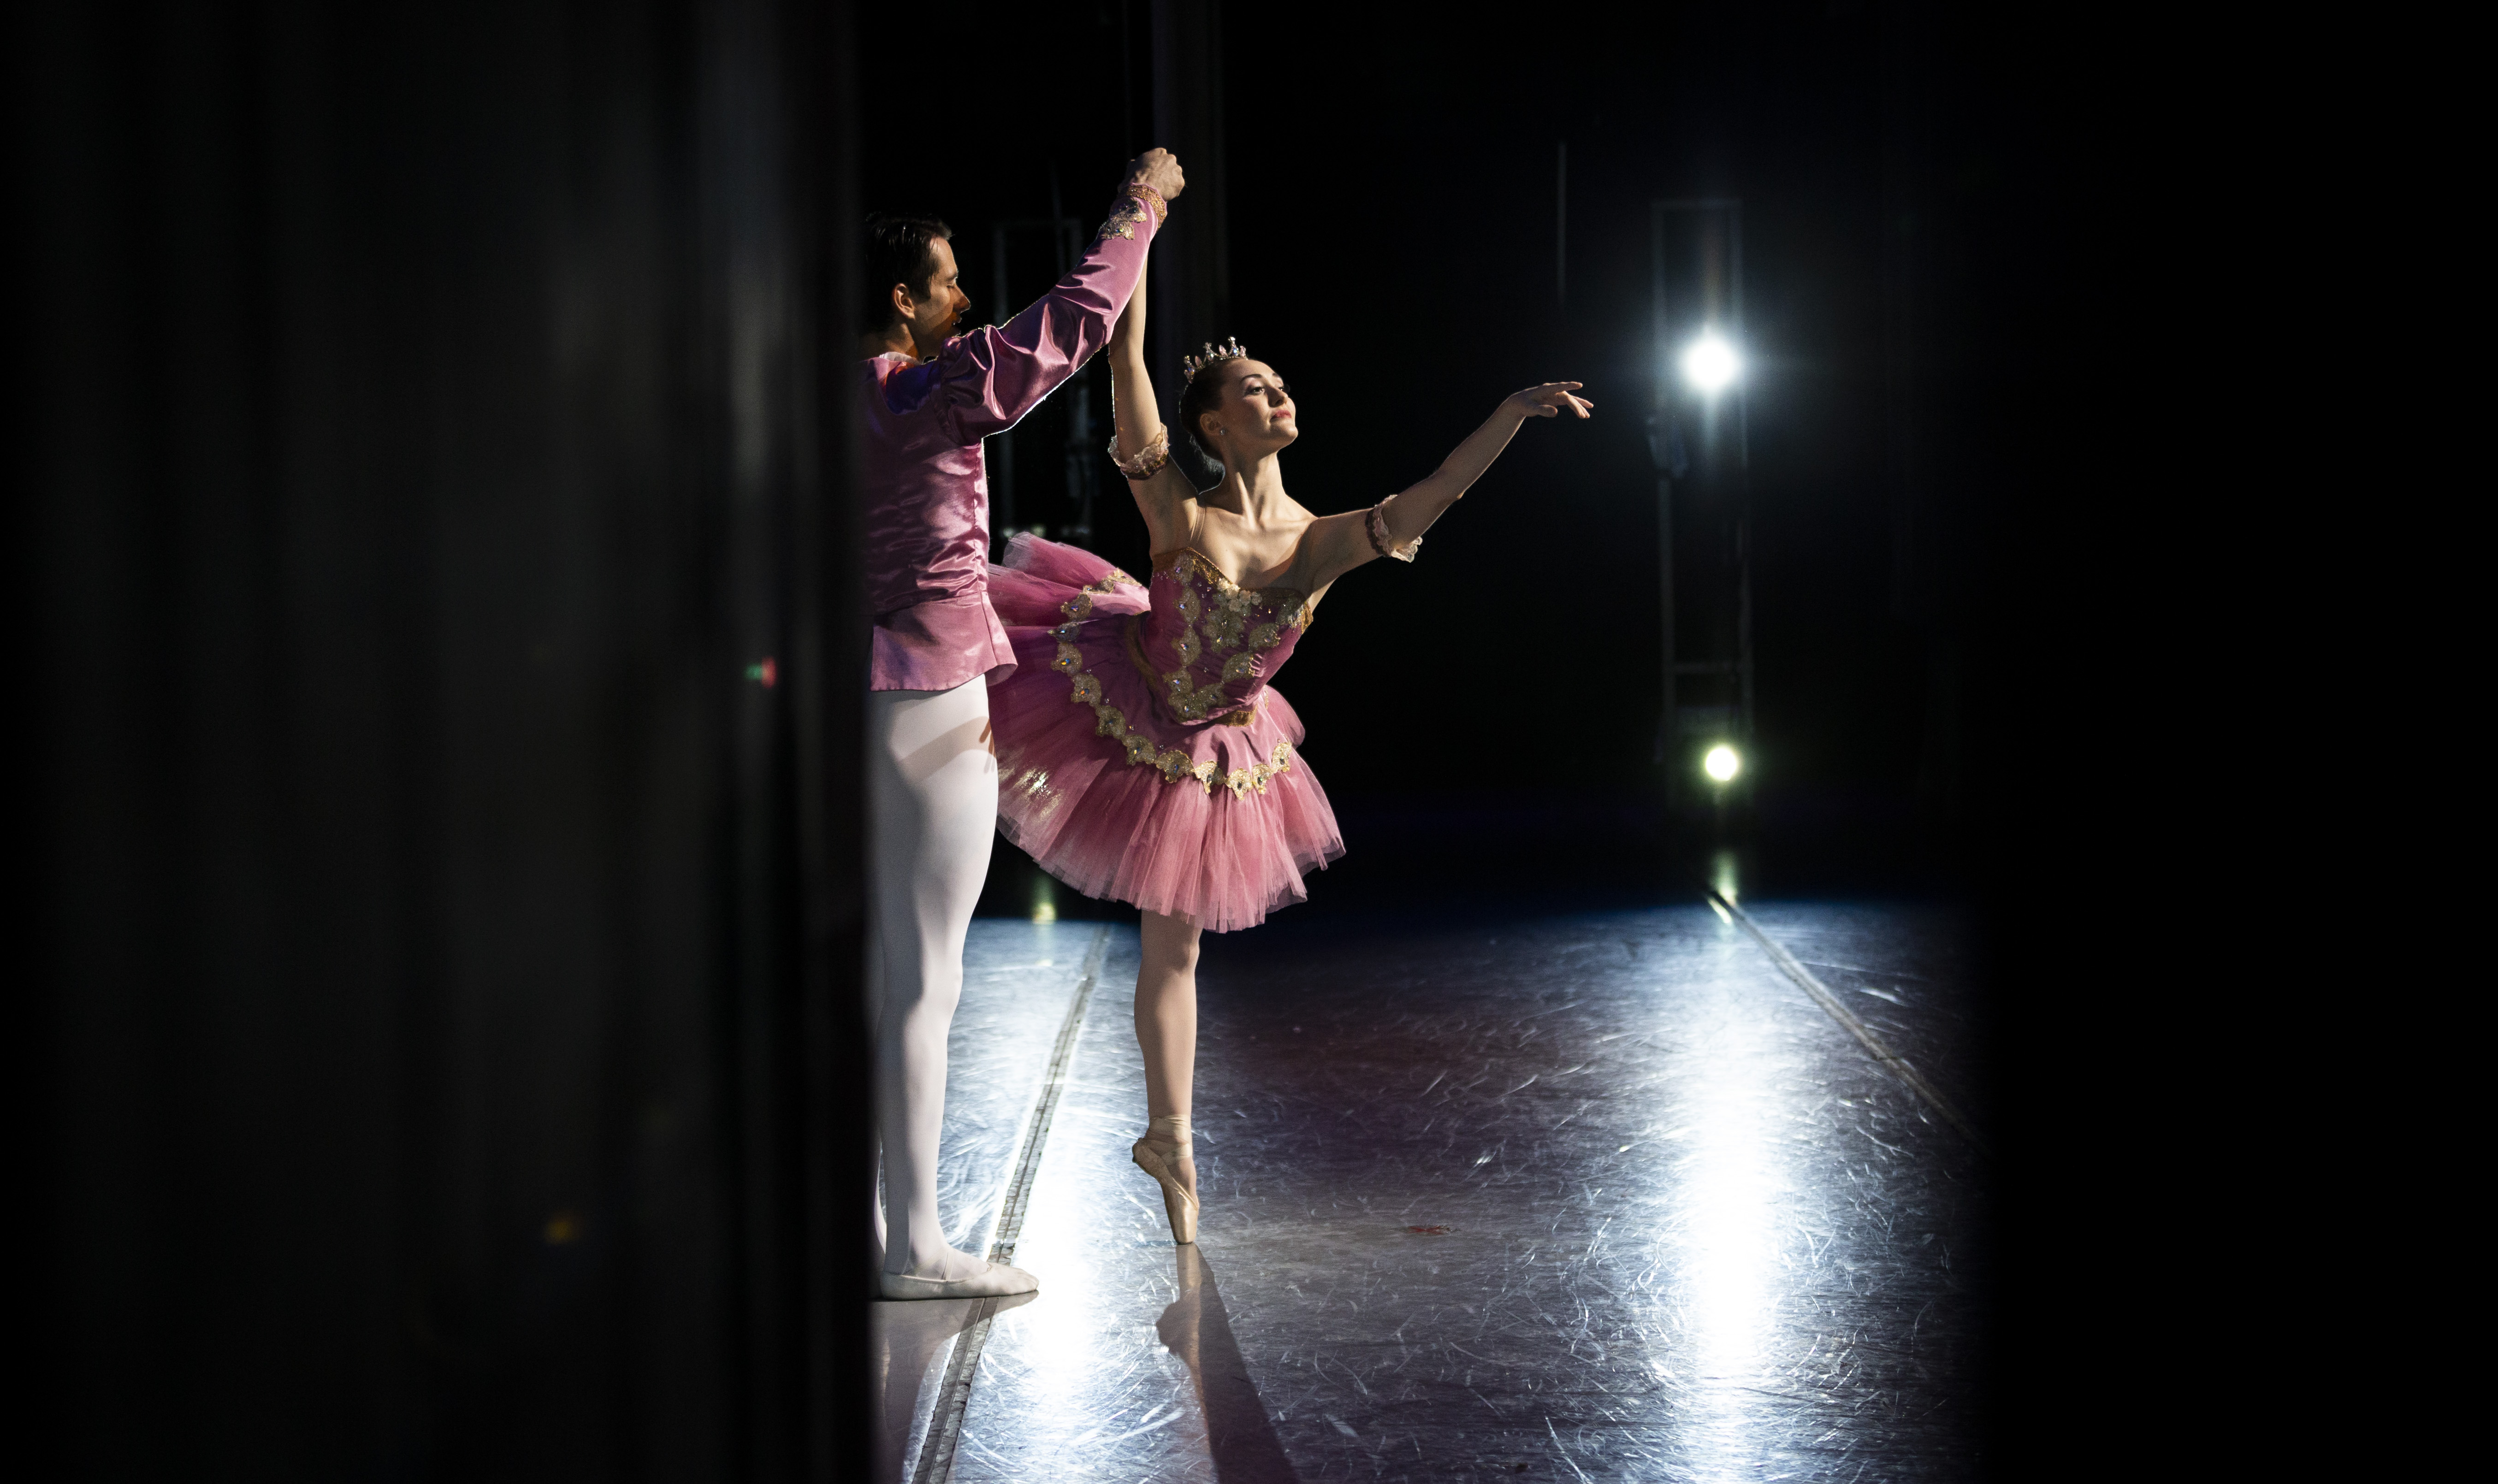 BSA_NutCracker_Performace_12-08-2019_076